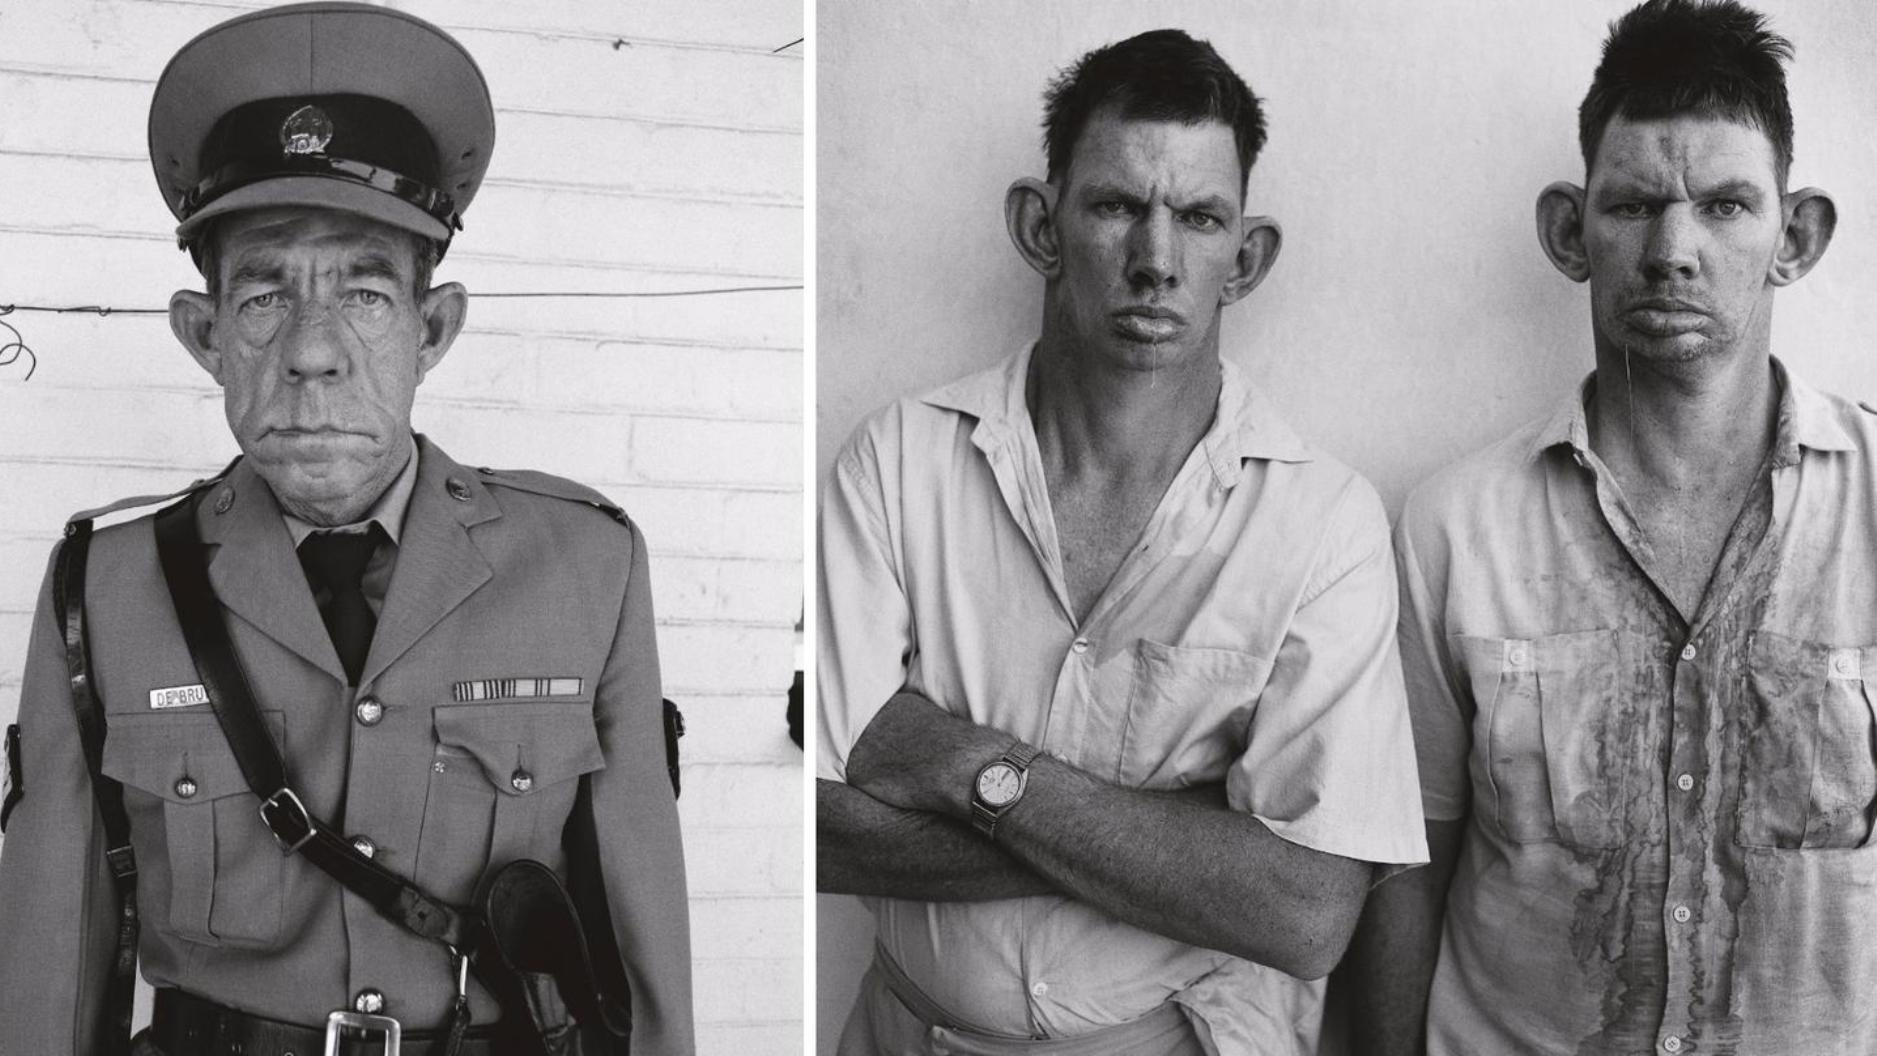 Roger Ballen, Sergeant F. de Bruin,  Department of Prisons Employee,  Orange Free State, 1992 ; Dresie and Casie, Twins, Western Transvaal, 1993. Images publiées avec l'aimable autorisation de l'artiste.